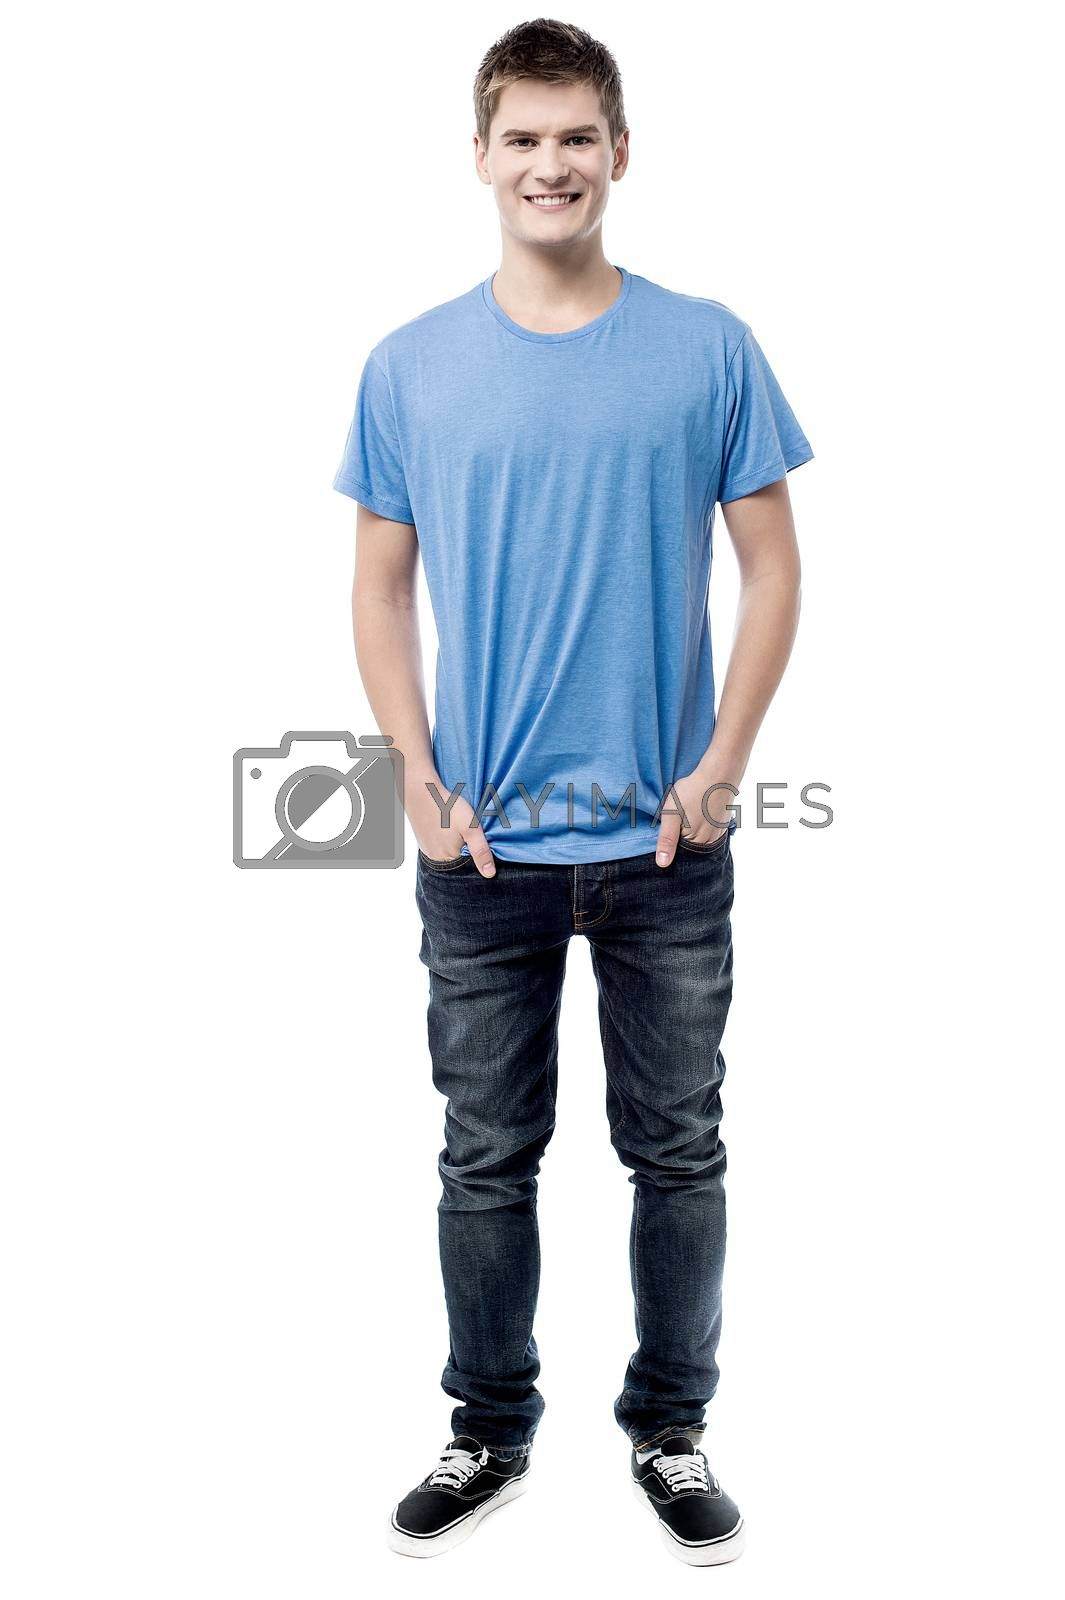 Smiling man posing with hands in pockets